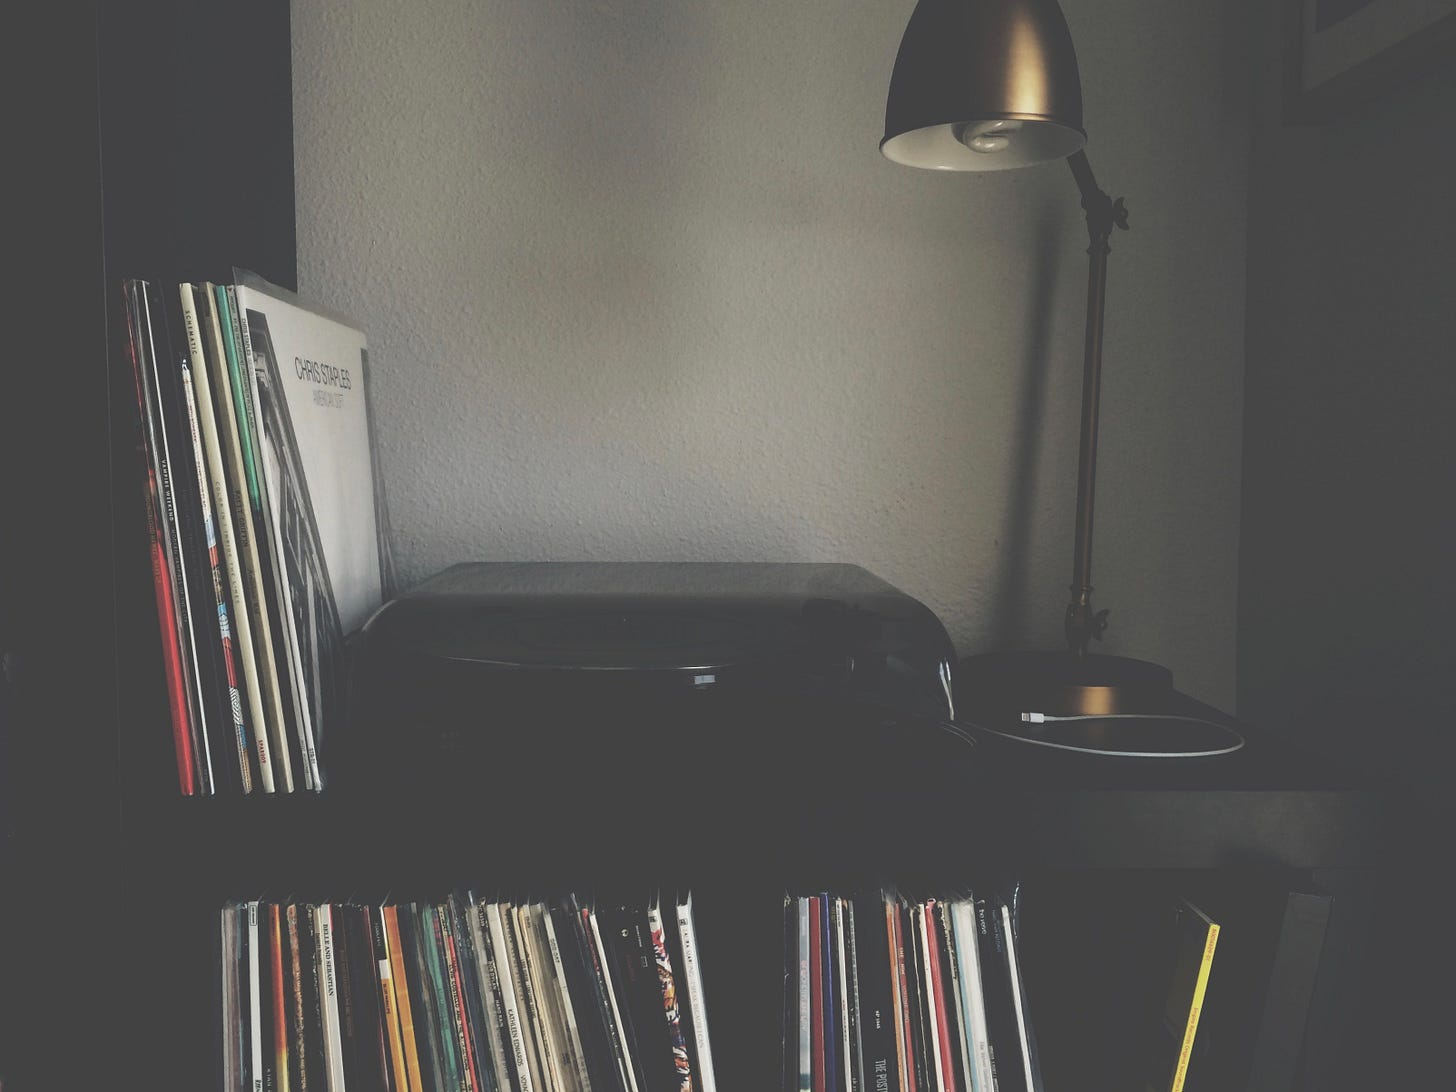 a record player with vertical stacks of records next to and on shelves underneath. An arm-style lap next to it.